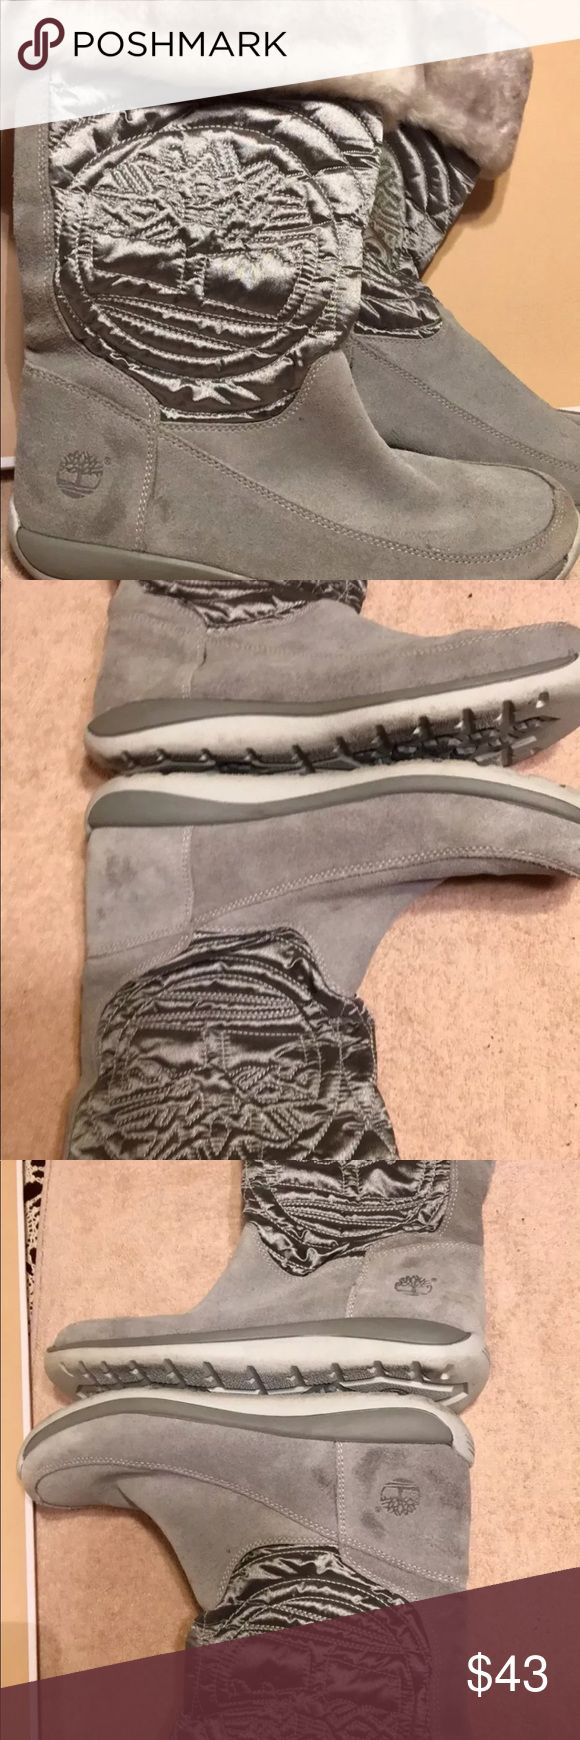 Timberland Hollyberry boots gray size 6 Timberland Junior boots excellent Condition Timberland Shoes Ankle Boots & Booties